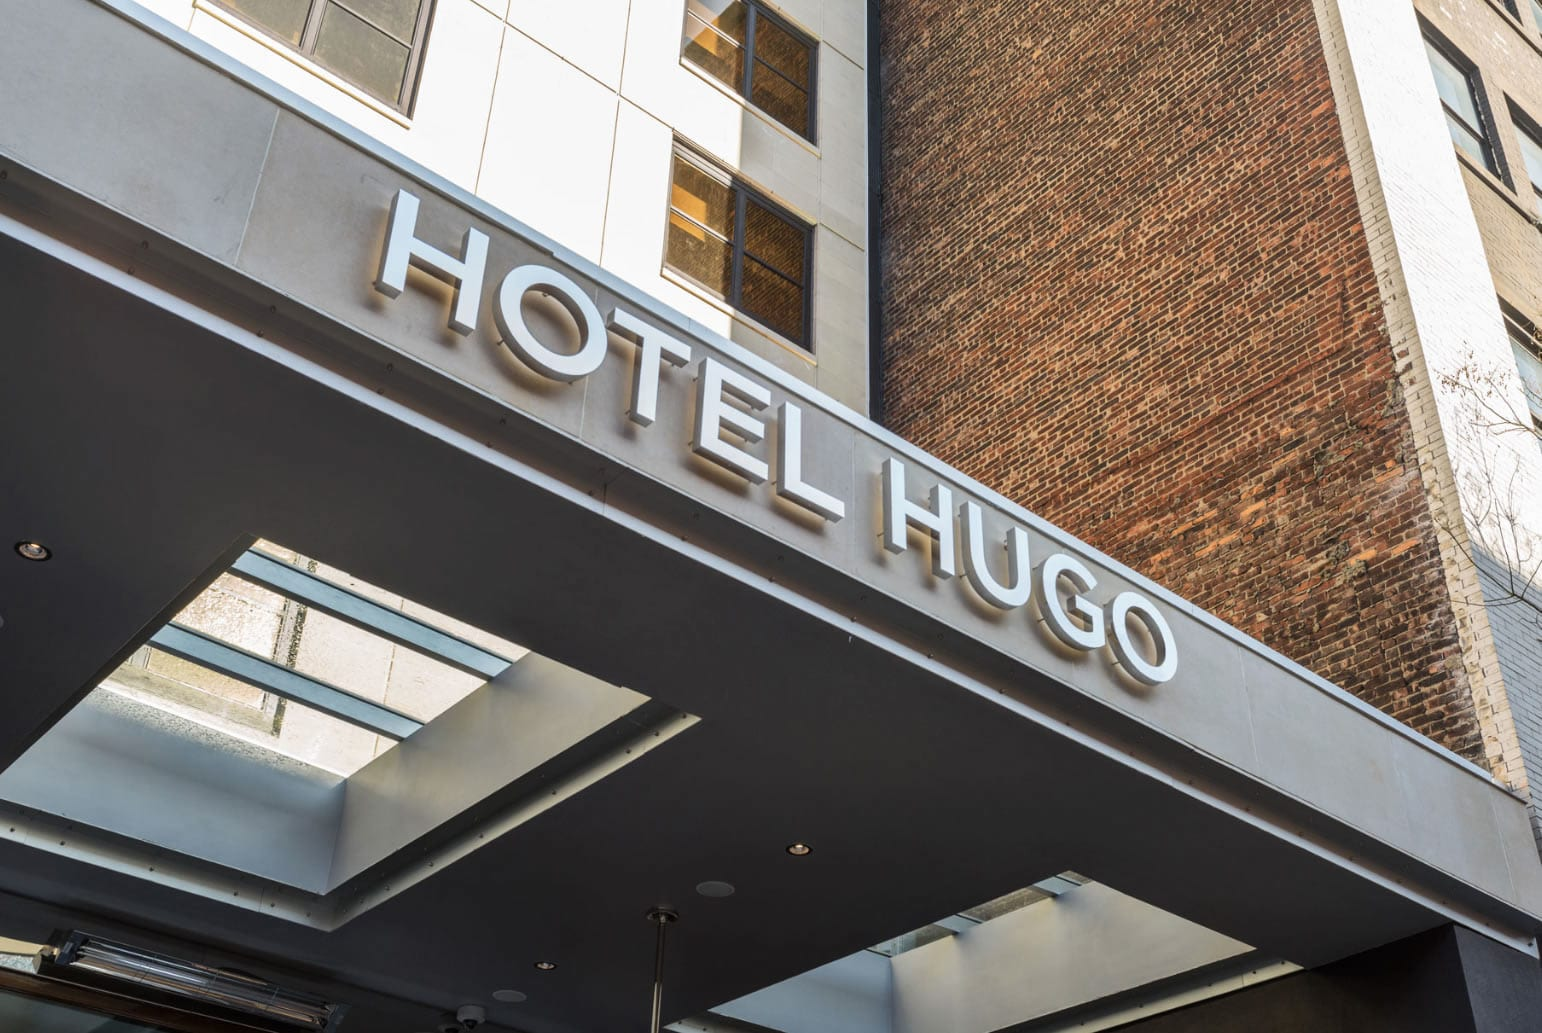 Hotel Hugo New York in SoHo